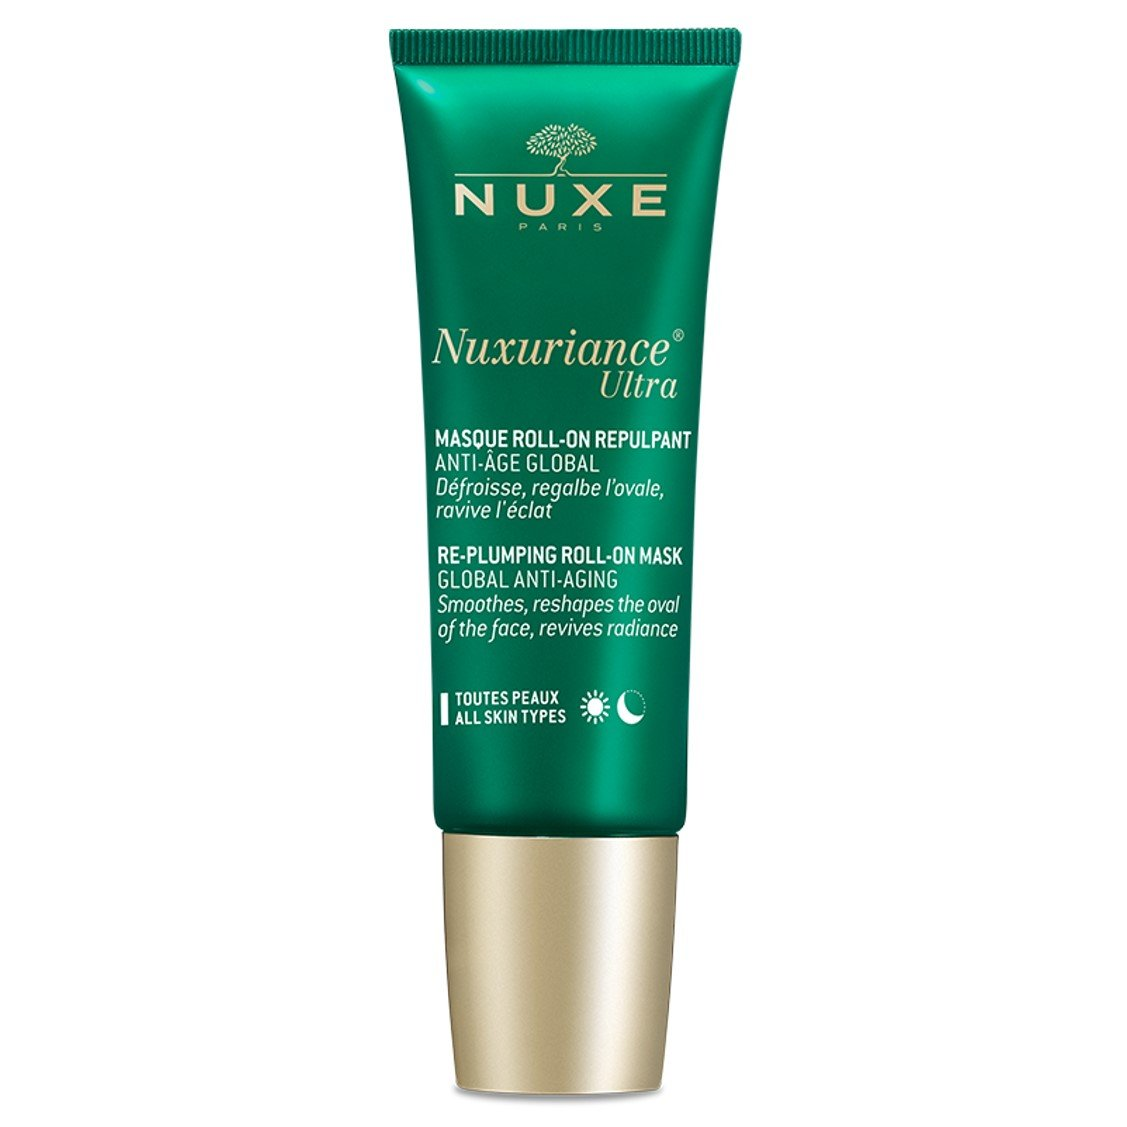 Nuxe Nuxuriance Ultra Mascarilla Roll-on Redensifiante 50ml B00ZY93VMG